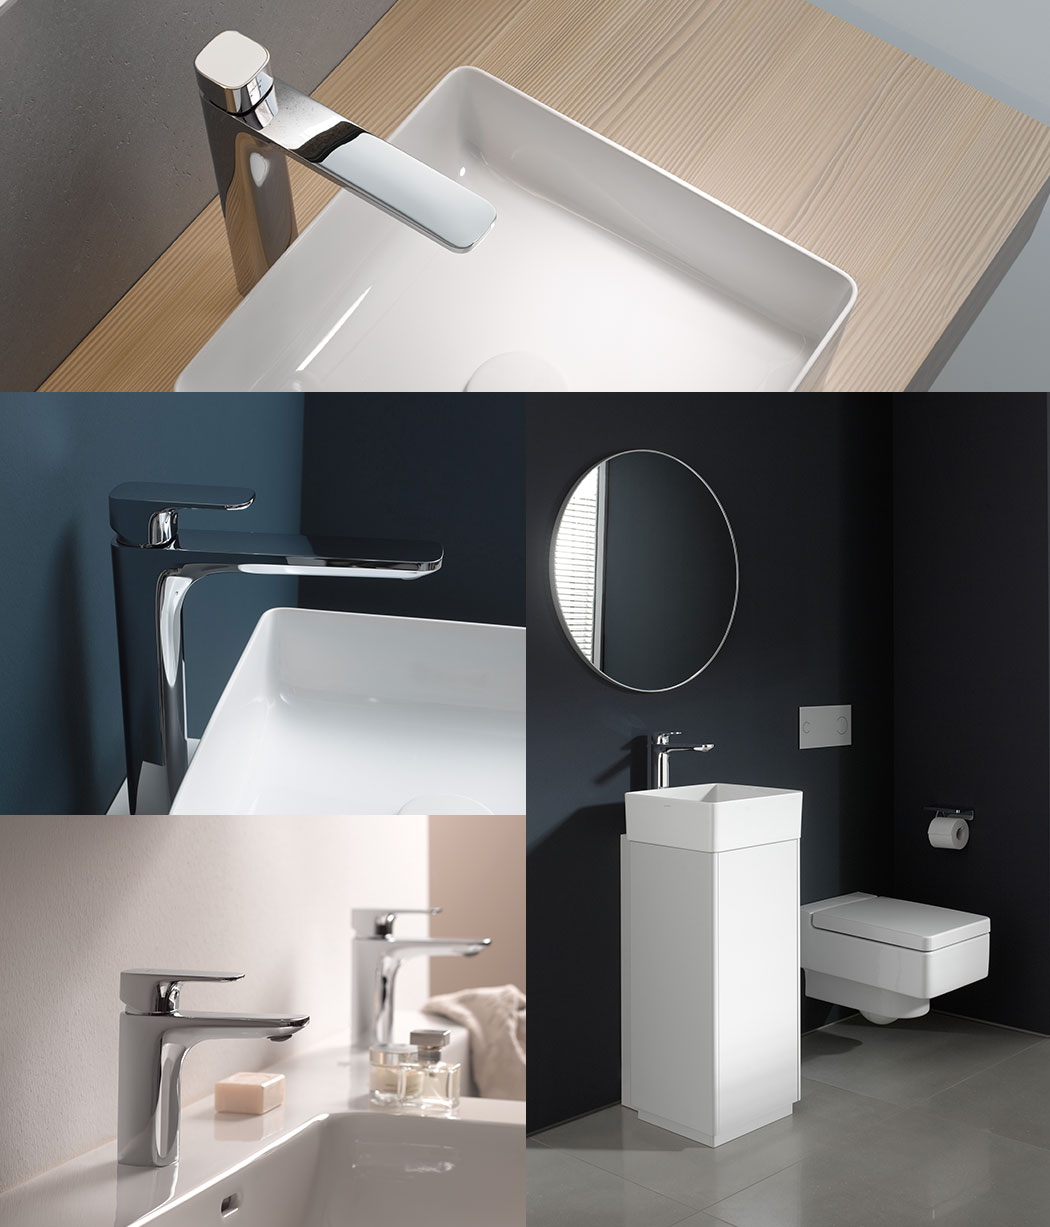 Reece bathrooms laufen cityplus chrome tapware